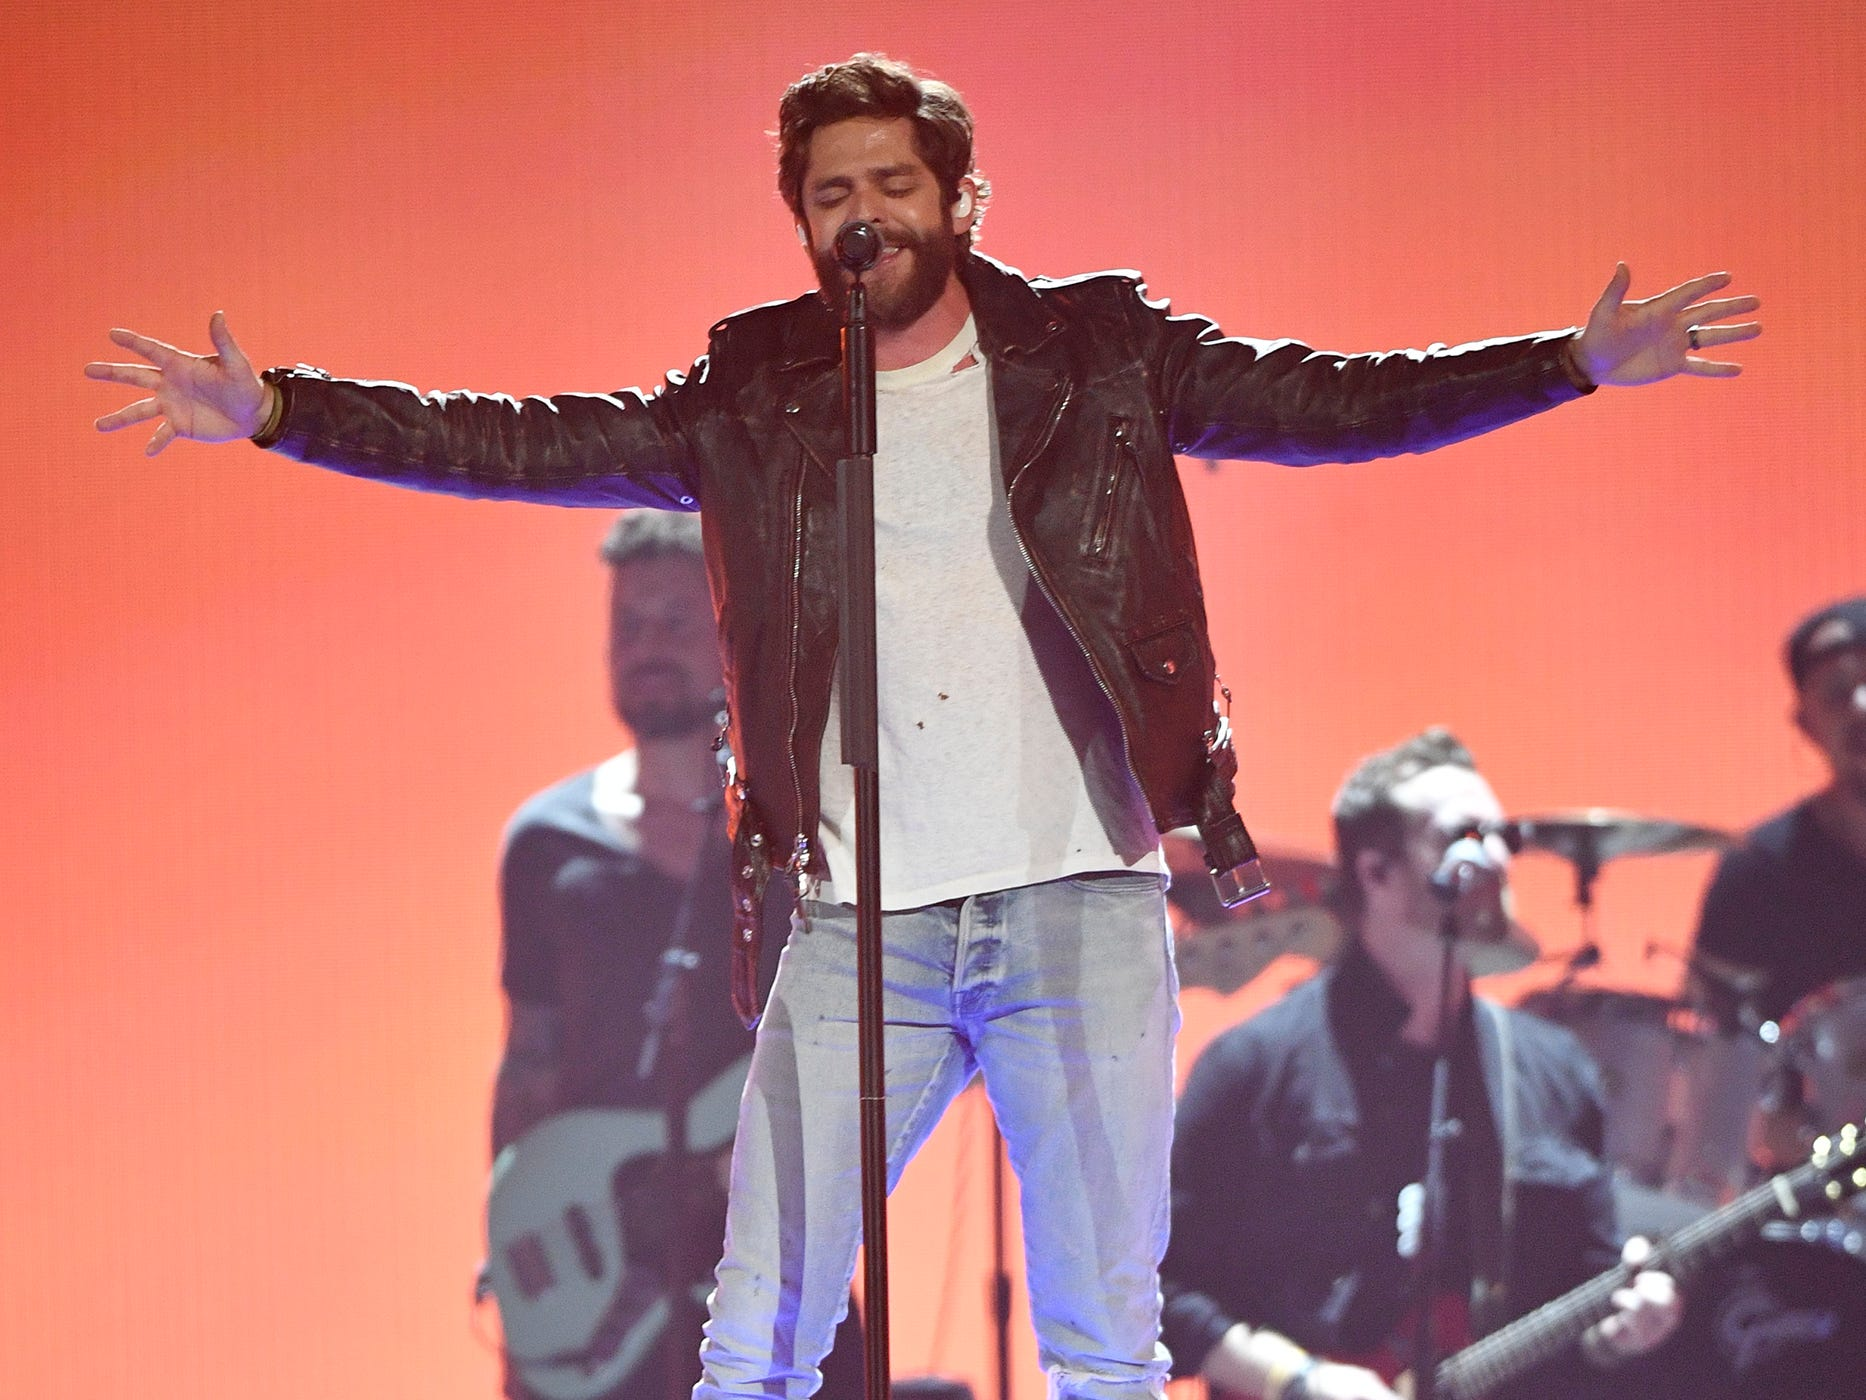 Thomas Rhett performs during the 54TH Academy of Country Music Awards Sunday, April 7, 2019, in Las Vegas, Nev.